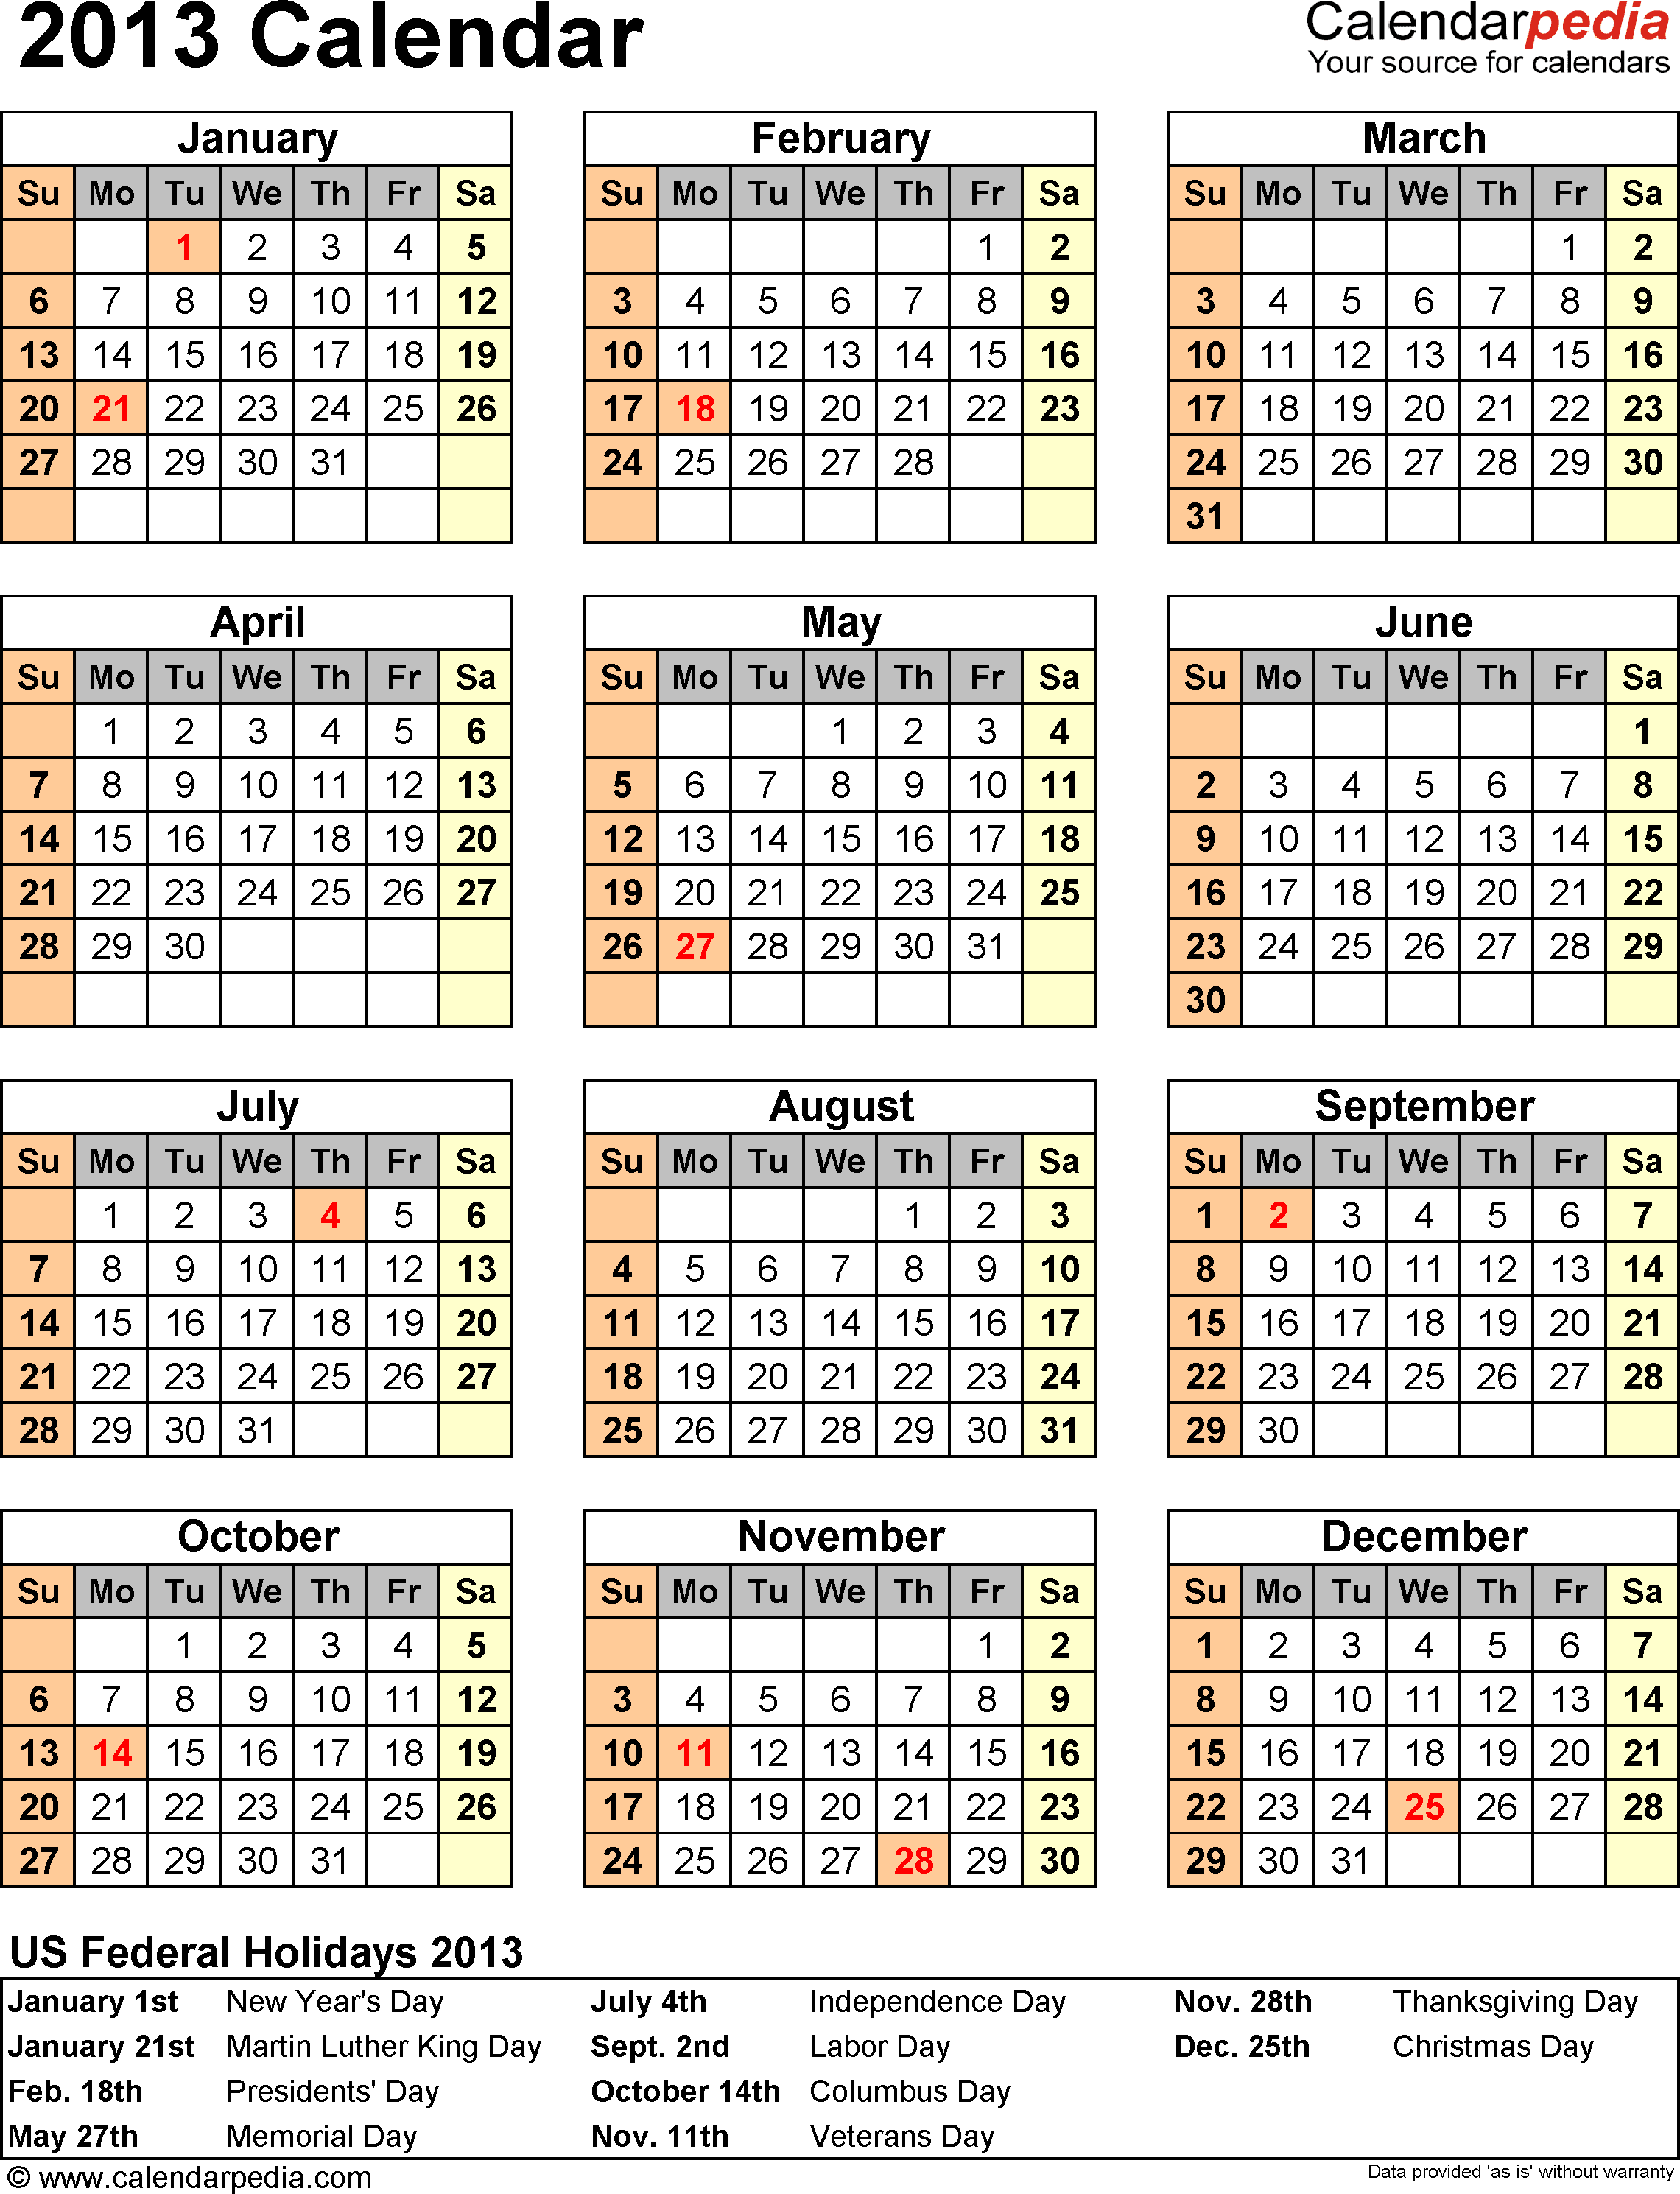 Download PDF Template For 2013 Calendar Template 11: Portrait Orientation,  1 Page